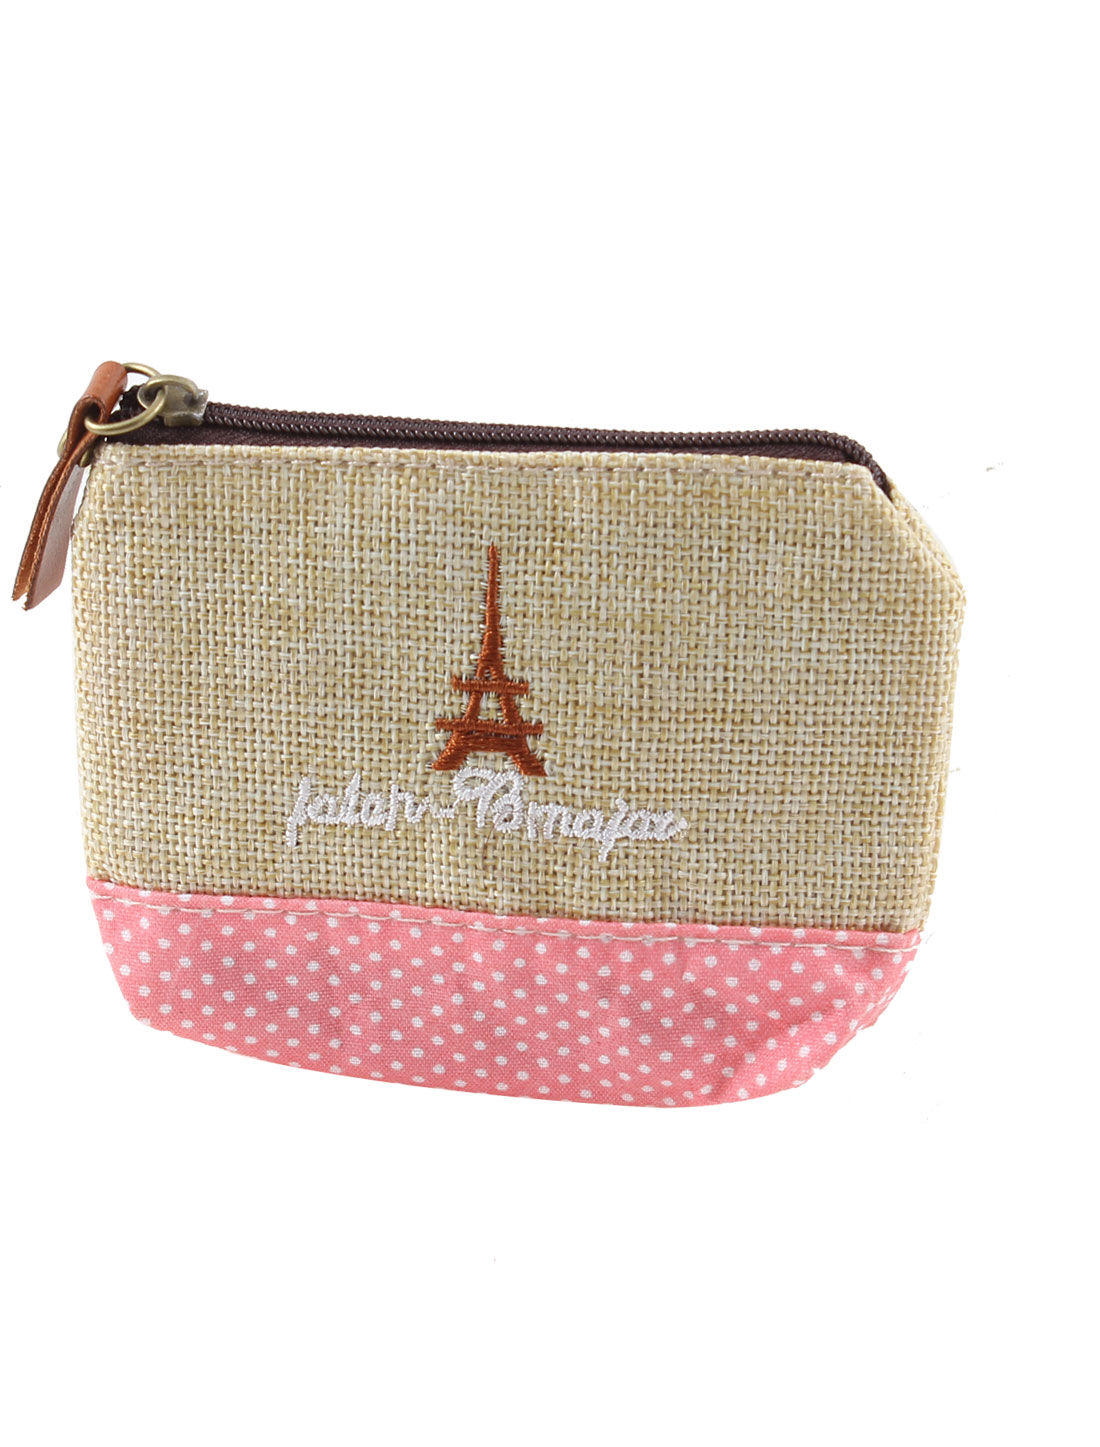 Dots Pattern Zip Up Eiffel Tower Accent Cash Coin Money Key Credit Card Purse Bag Beige Pink for Ladies